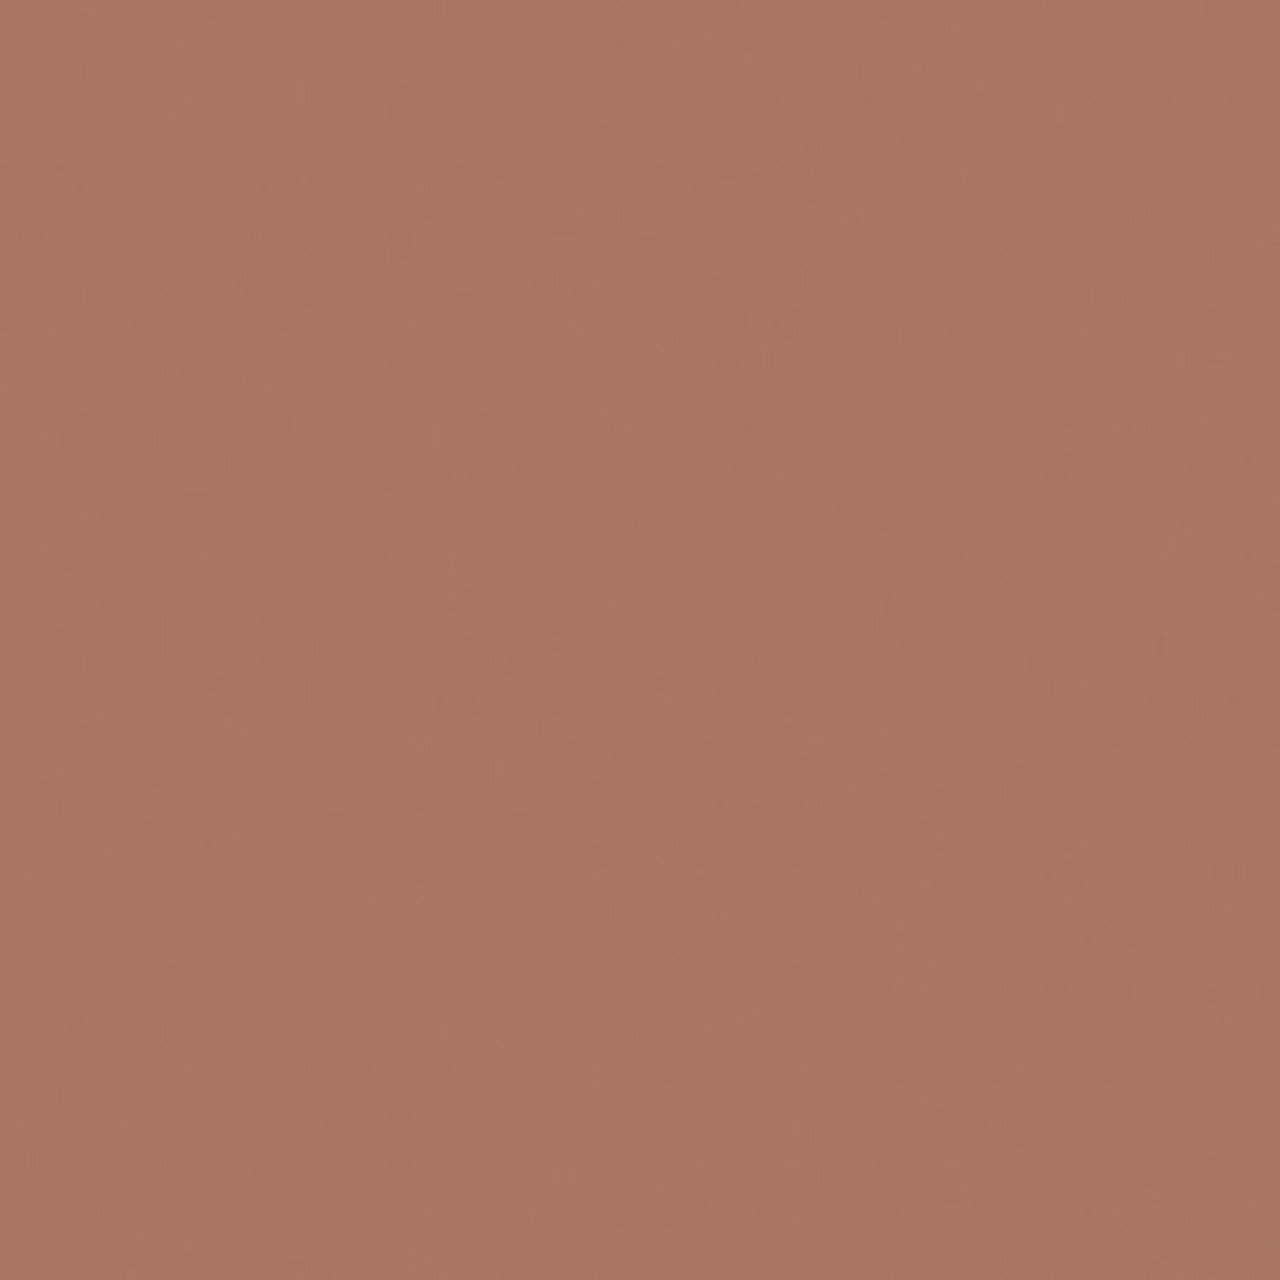 #0099 Rosco Gels Roscolux Chocolate, 20x24""